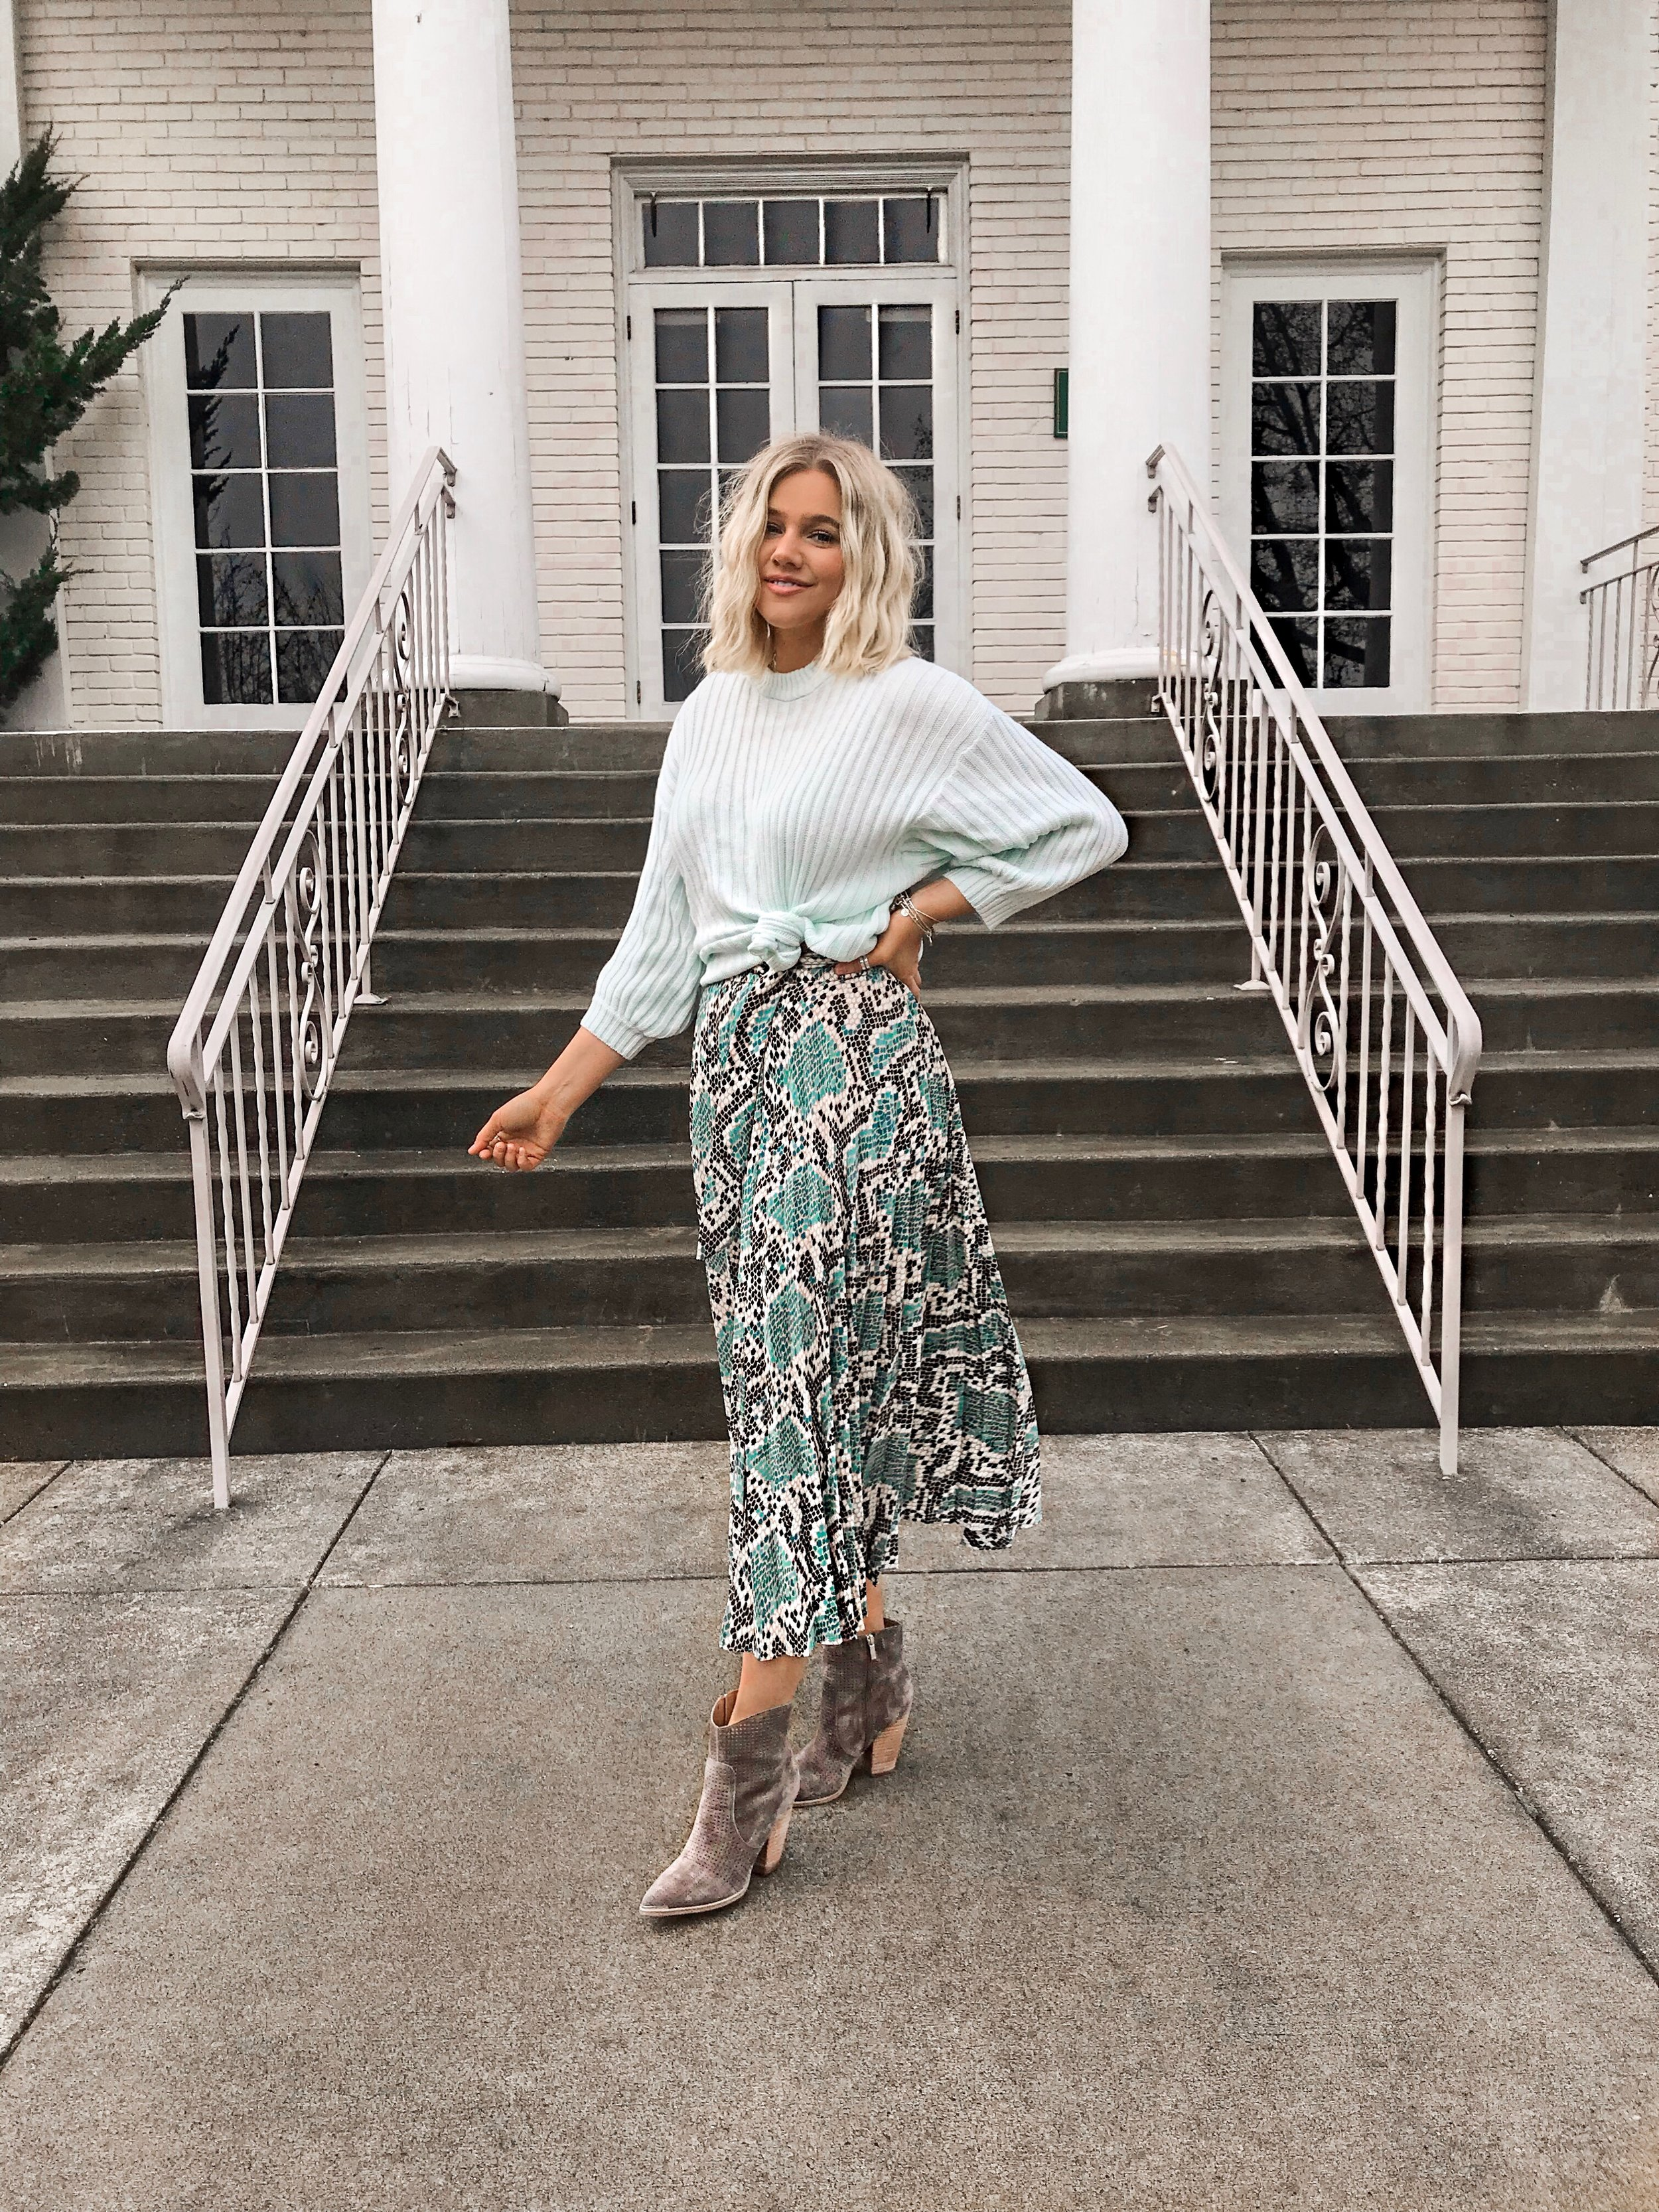 Bre Sheppard : Spring Style : Nordstrom : Topshop : Outfit Inspo.JPG